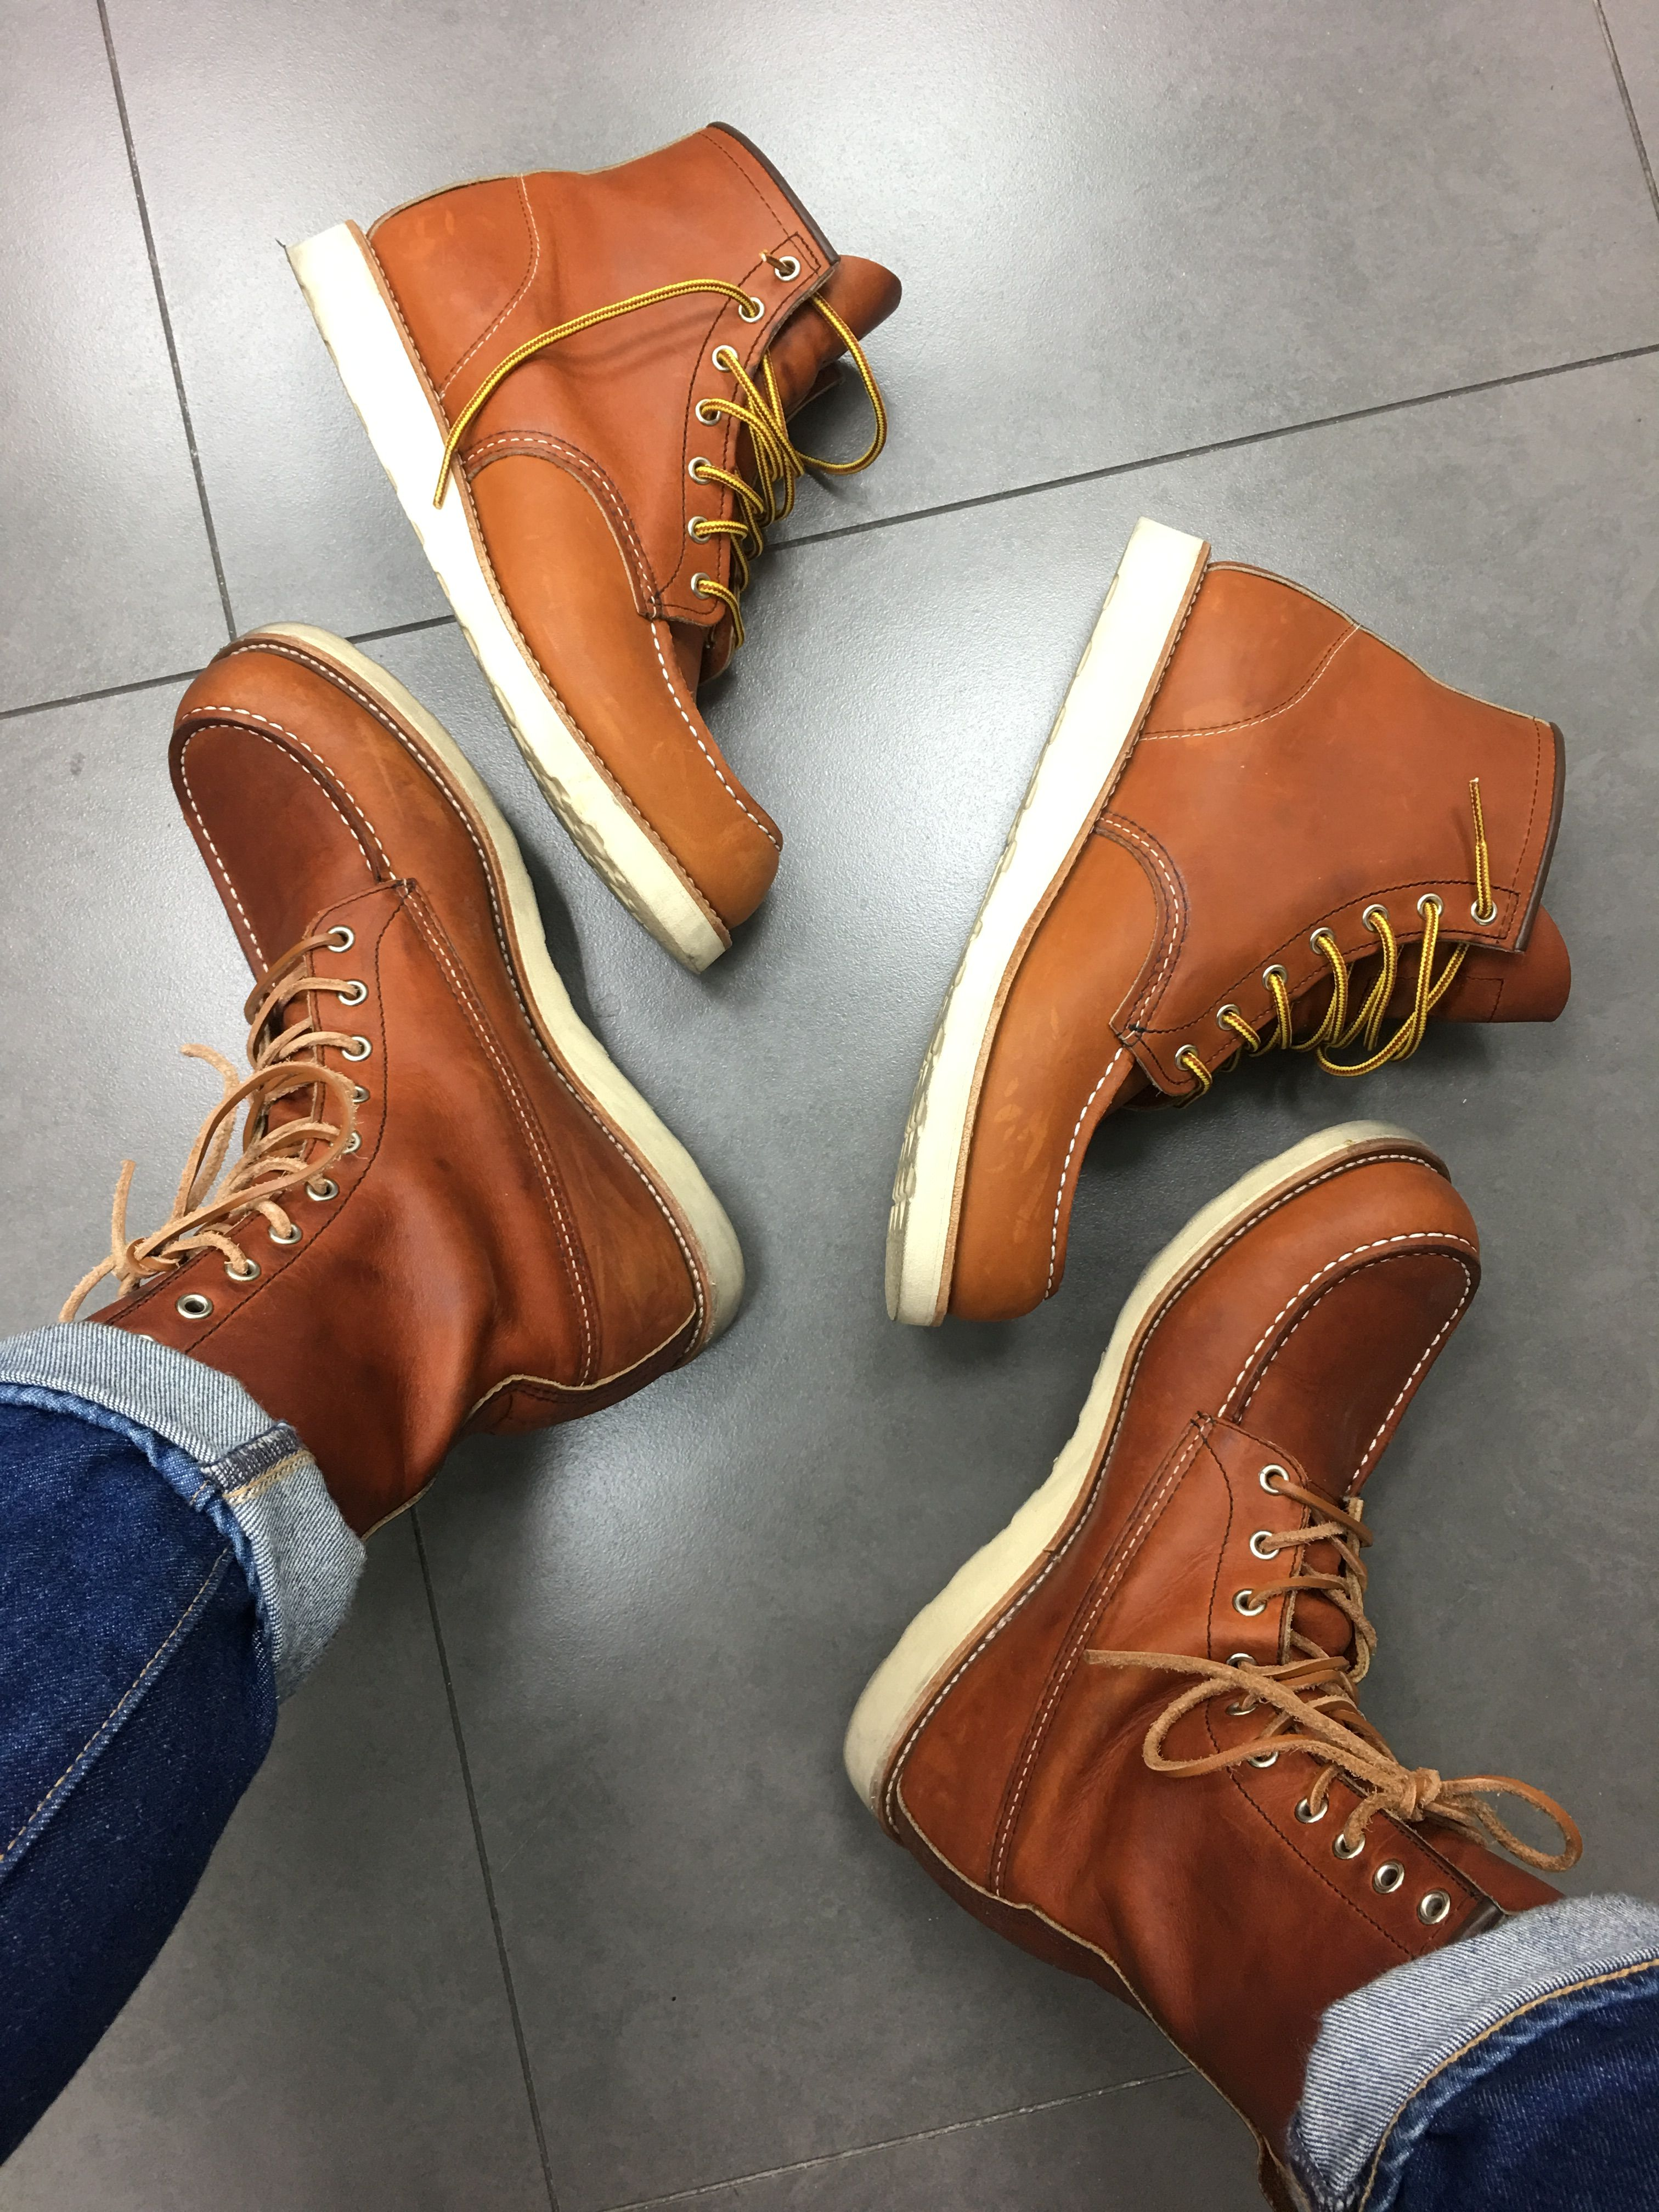 f3a3c3cc8d7 Red Wing 877 Red Wing 875